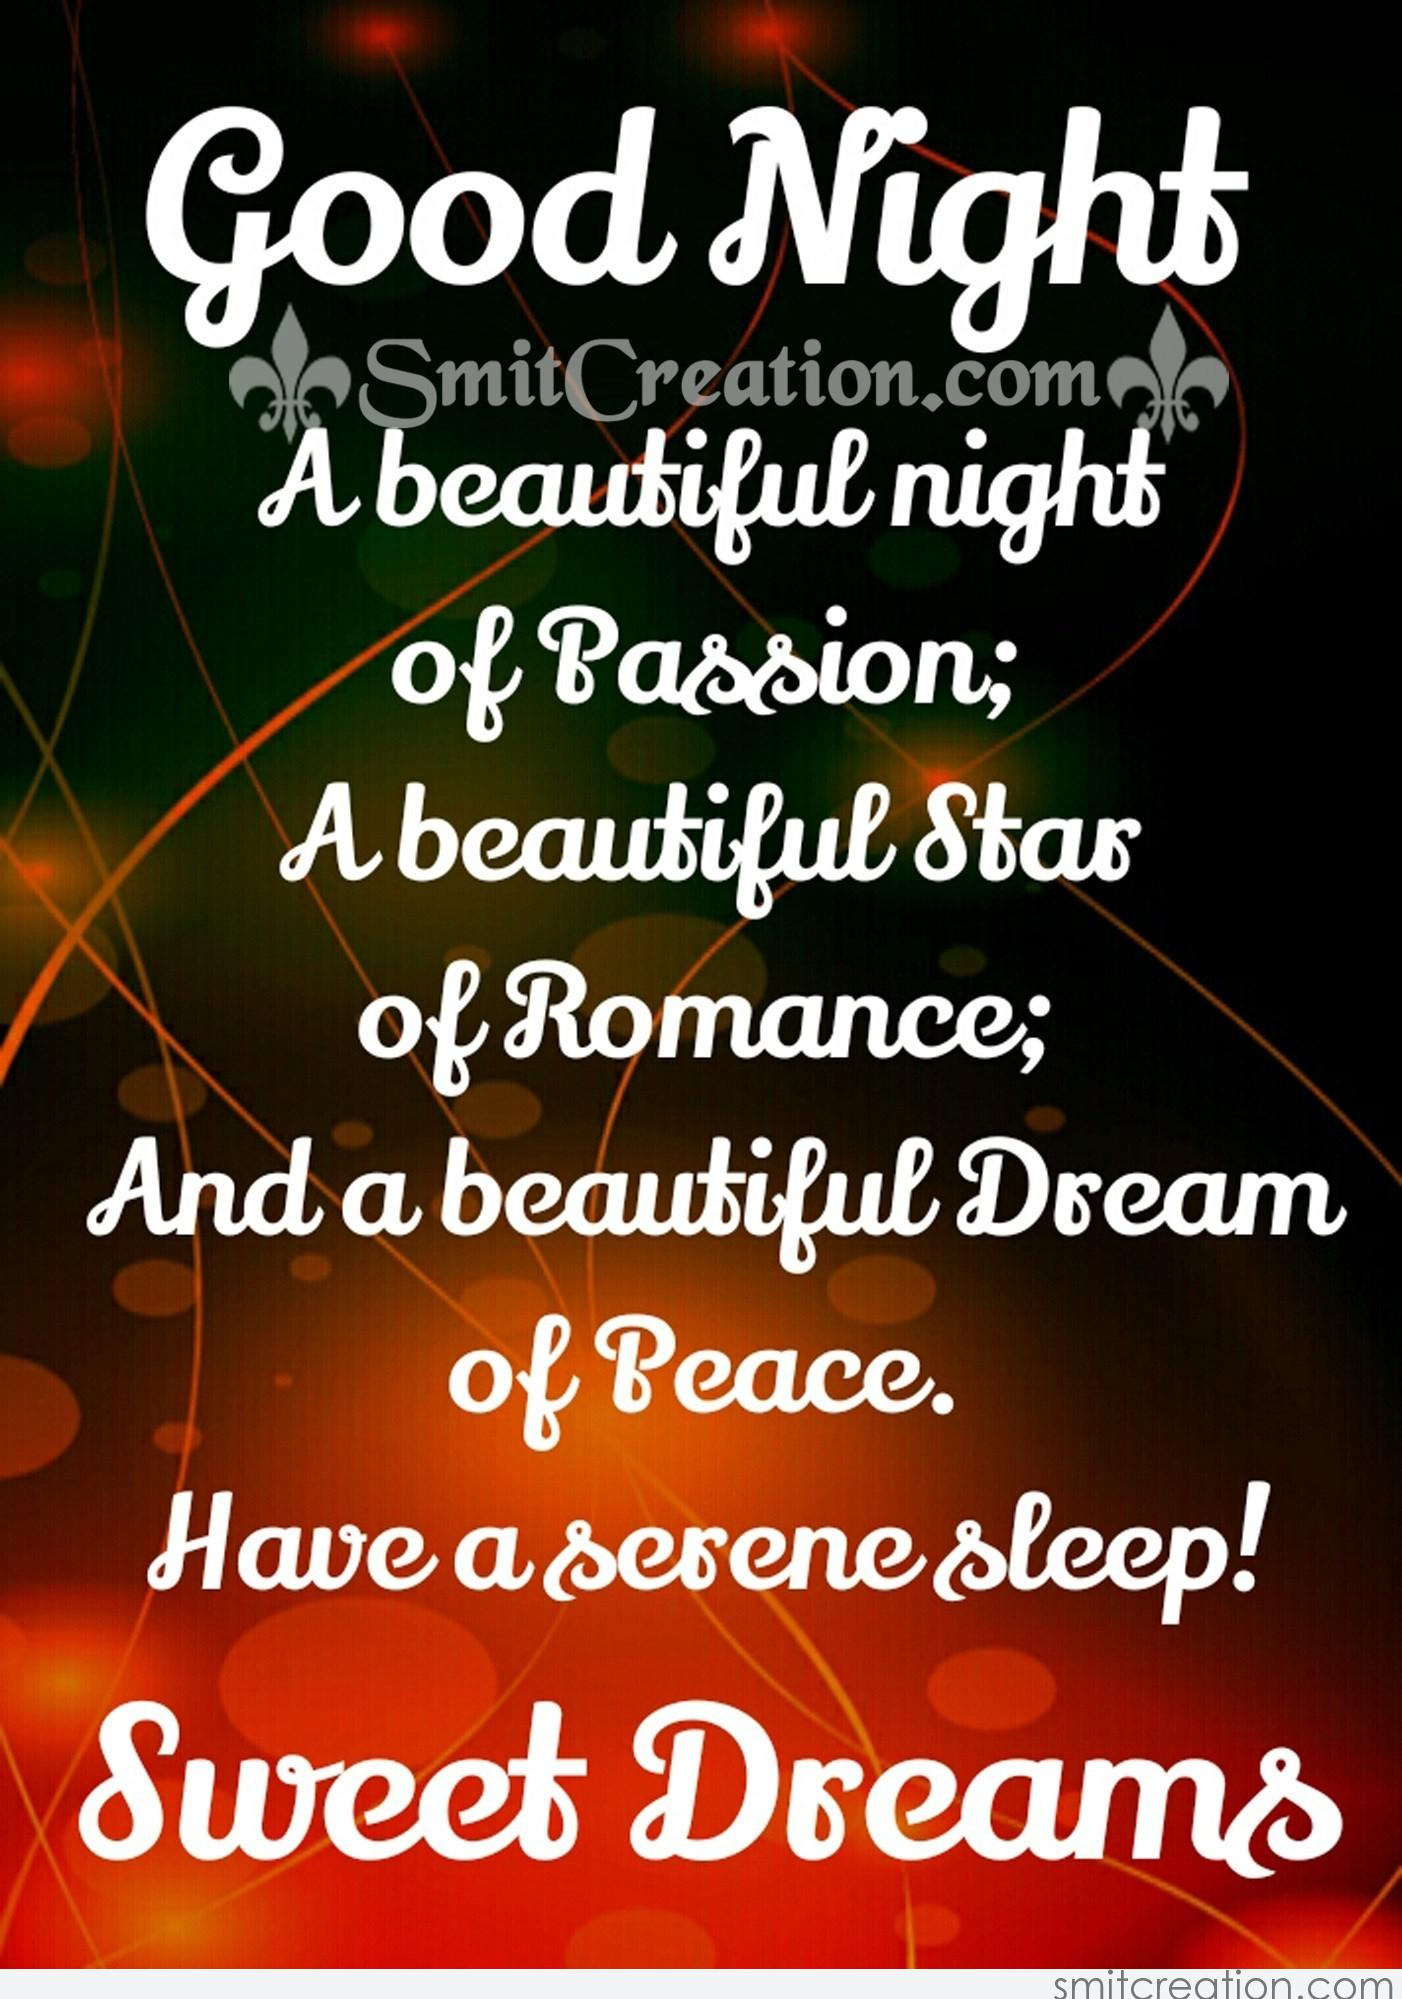 Good Night Sweet Dreams A Beautiful Night Of Passion; A Beautiful Star Of  Romance; And A Beautiful Dream Of. Peace. Have A Serene Sleep! 🙂